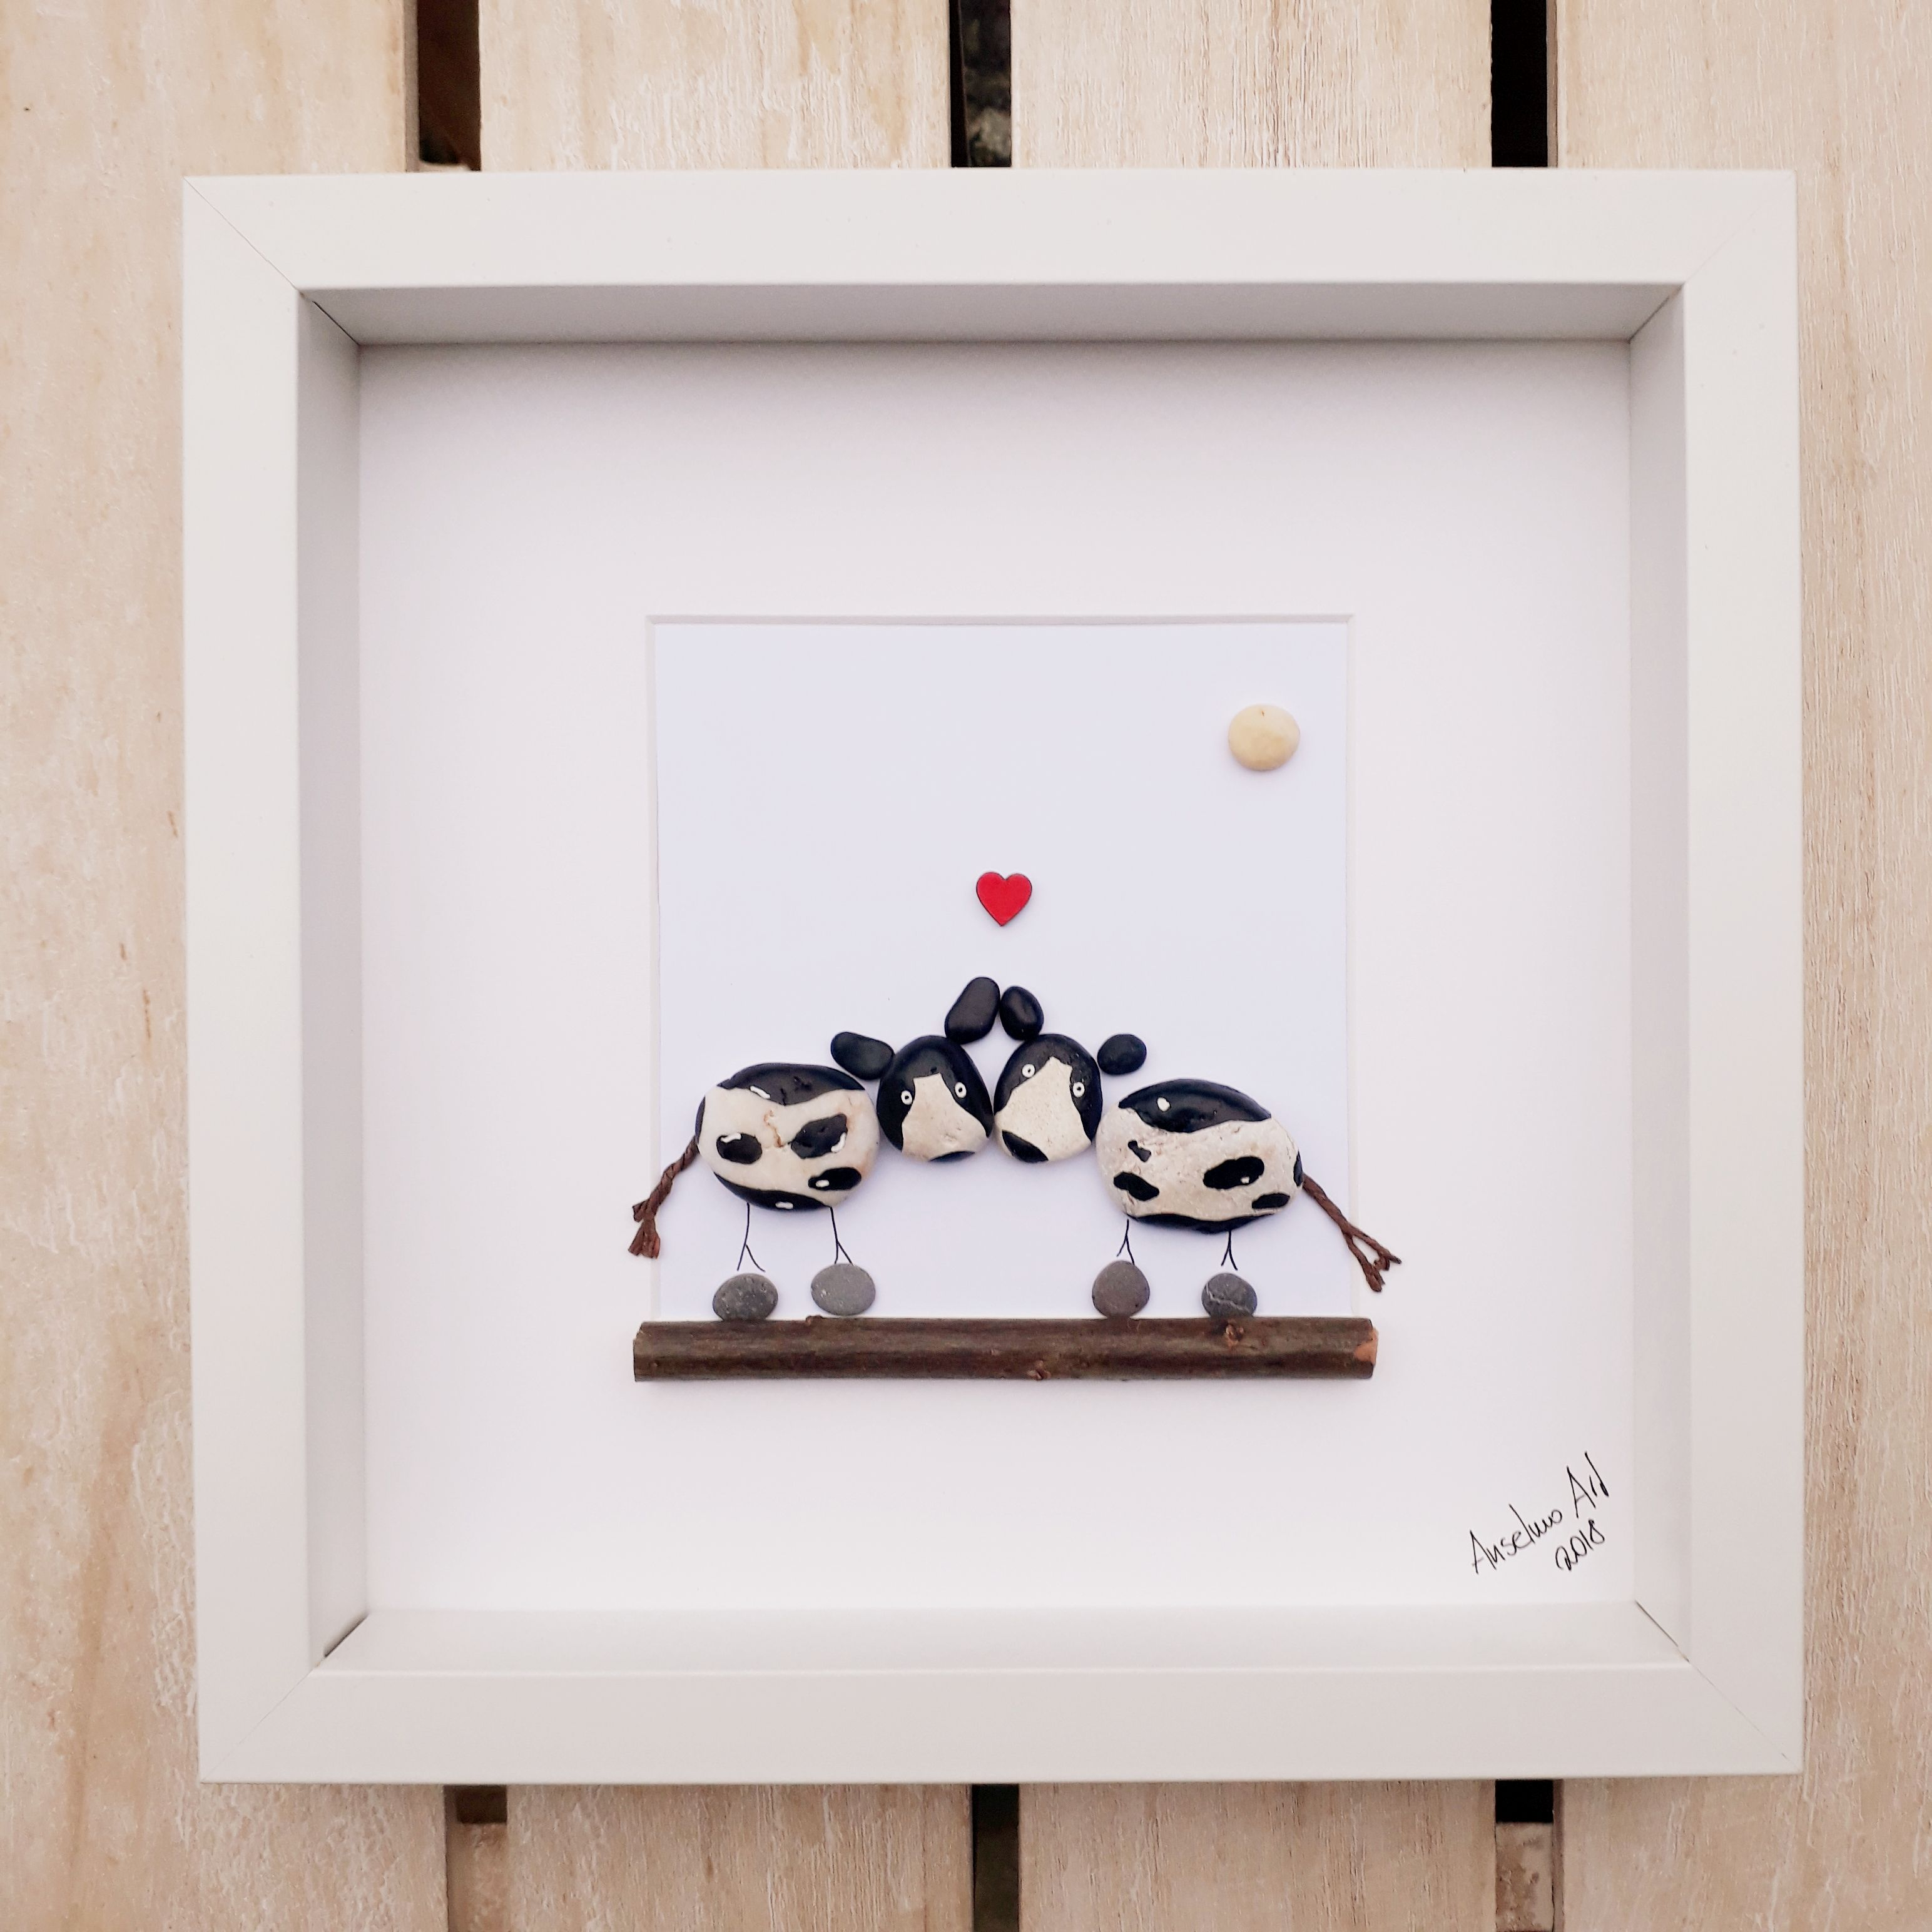 Cows Pebble Picture Framed Pebble Art Valentine S Day Wedding Gift Birthday Gift Family Pebble Personalised Gift K Pebble Art Pebble Pictures Rock Crafts